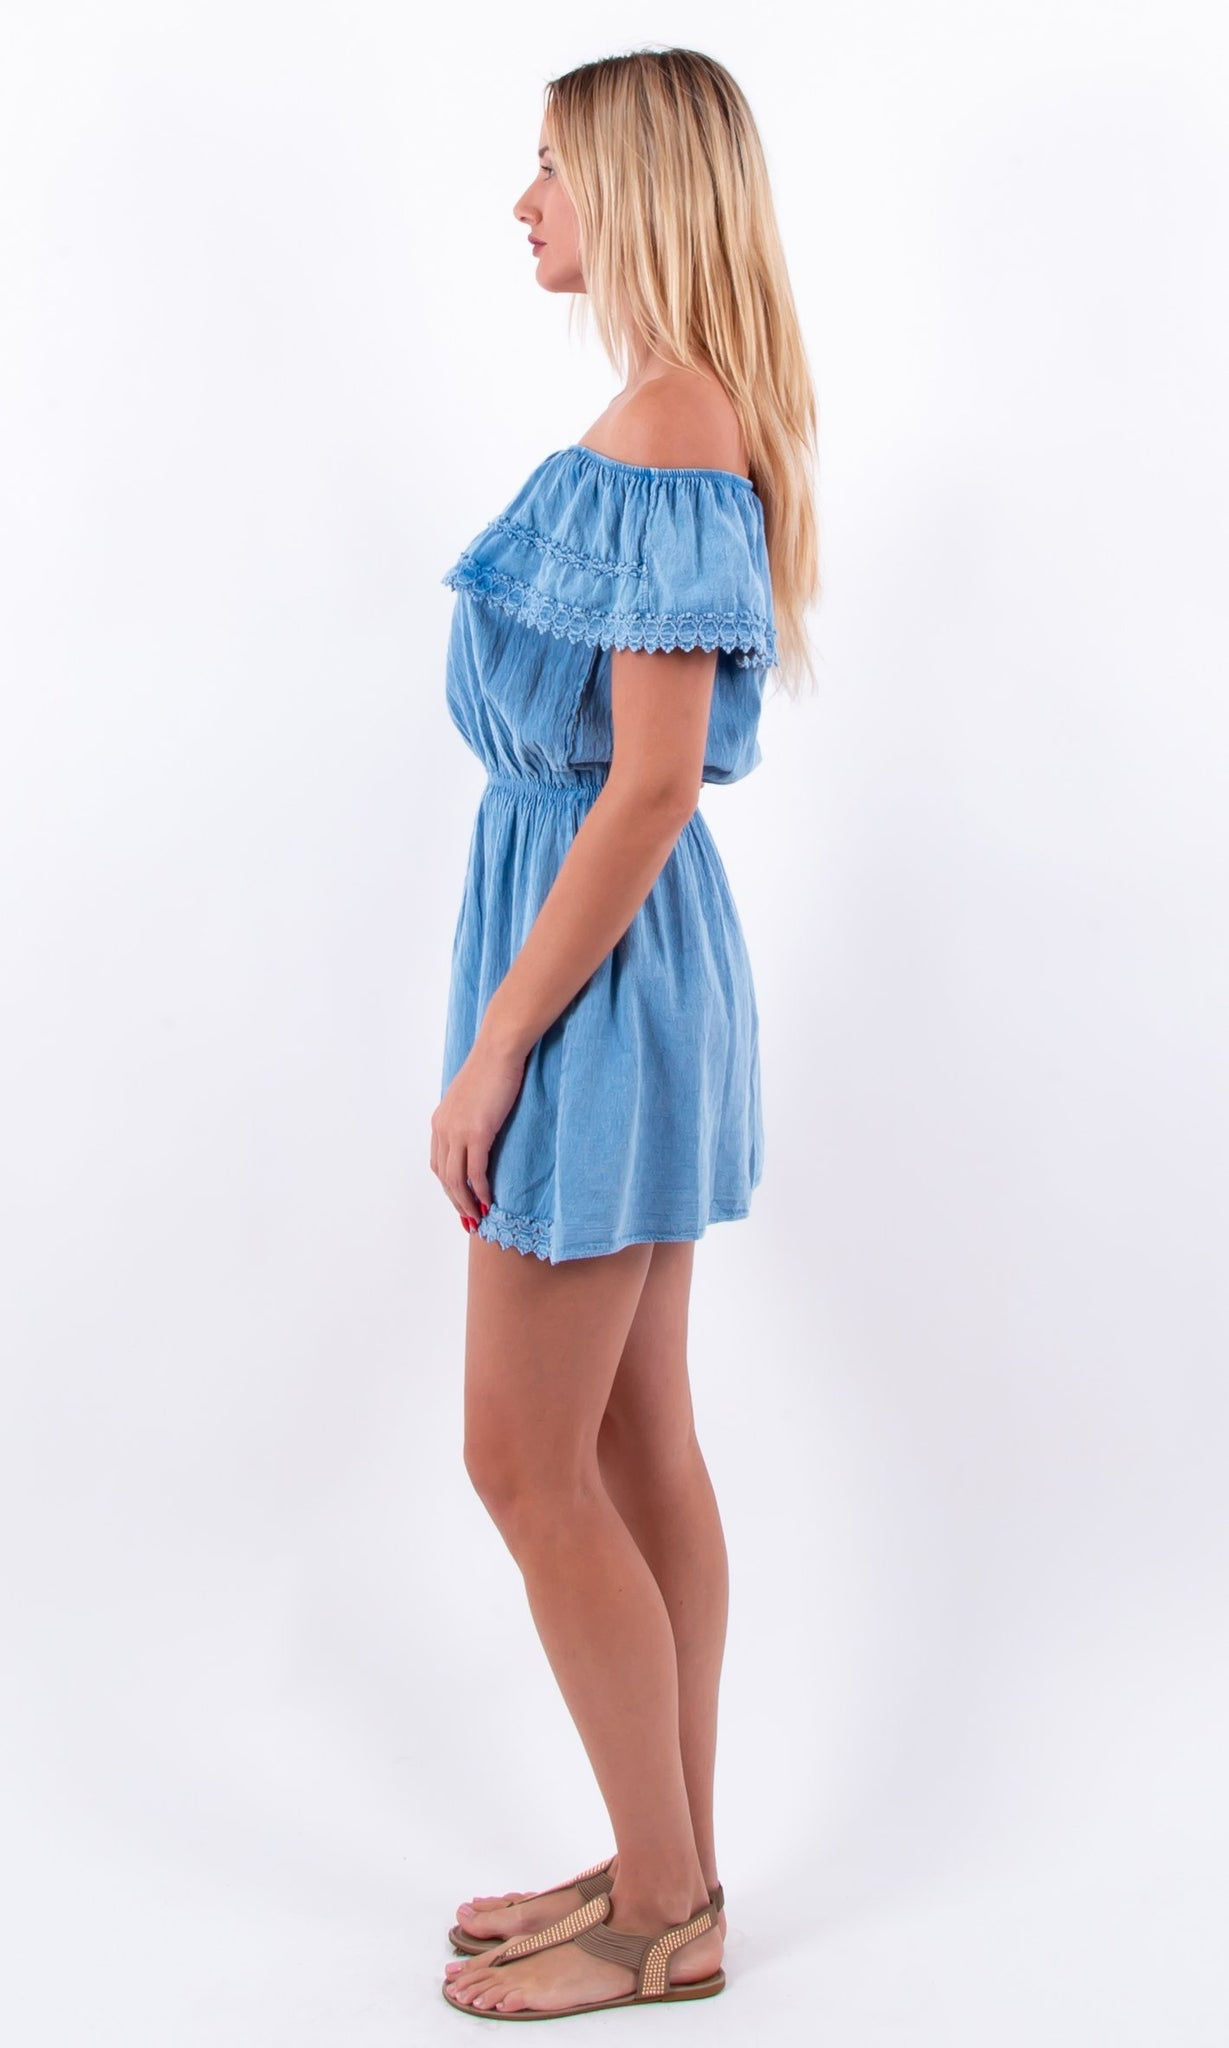 NW1084 - Blue Cotton Dress